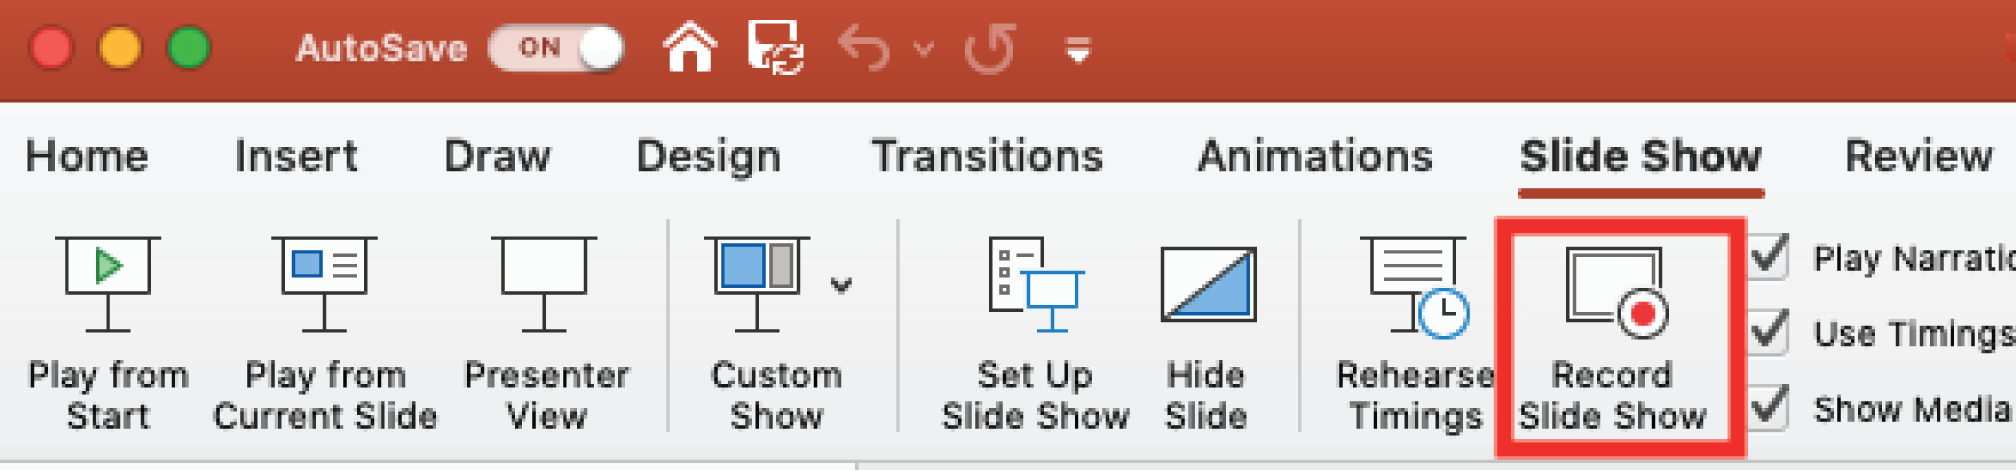 The toolbar of Powerpoint with the Record Slide Show button selected.